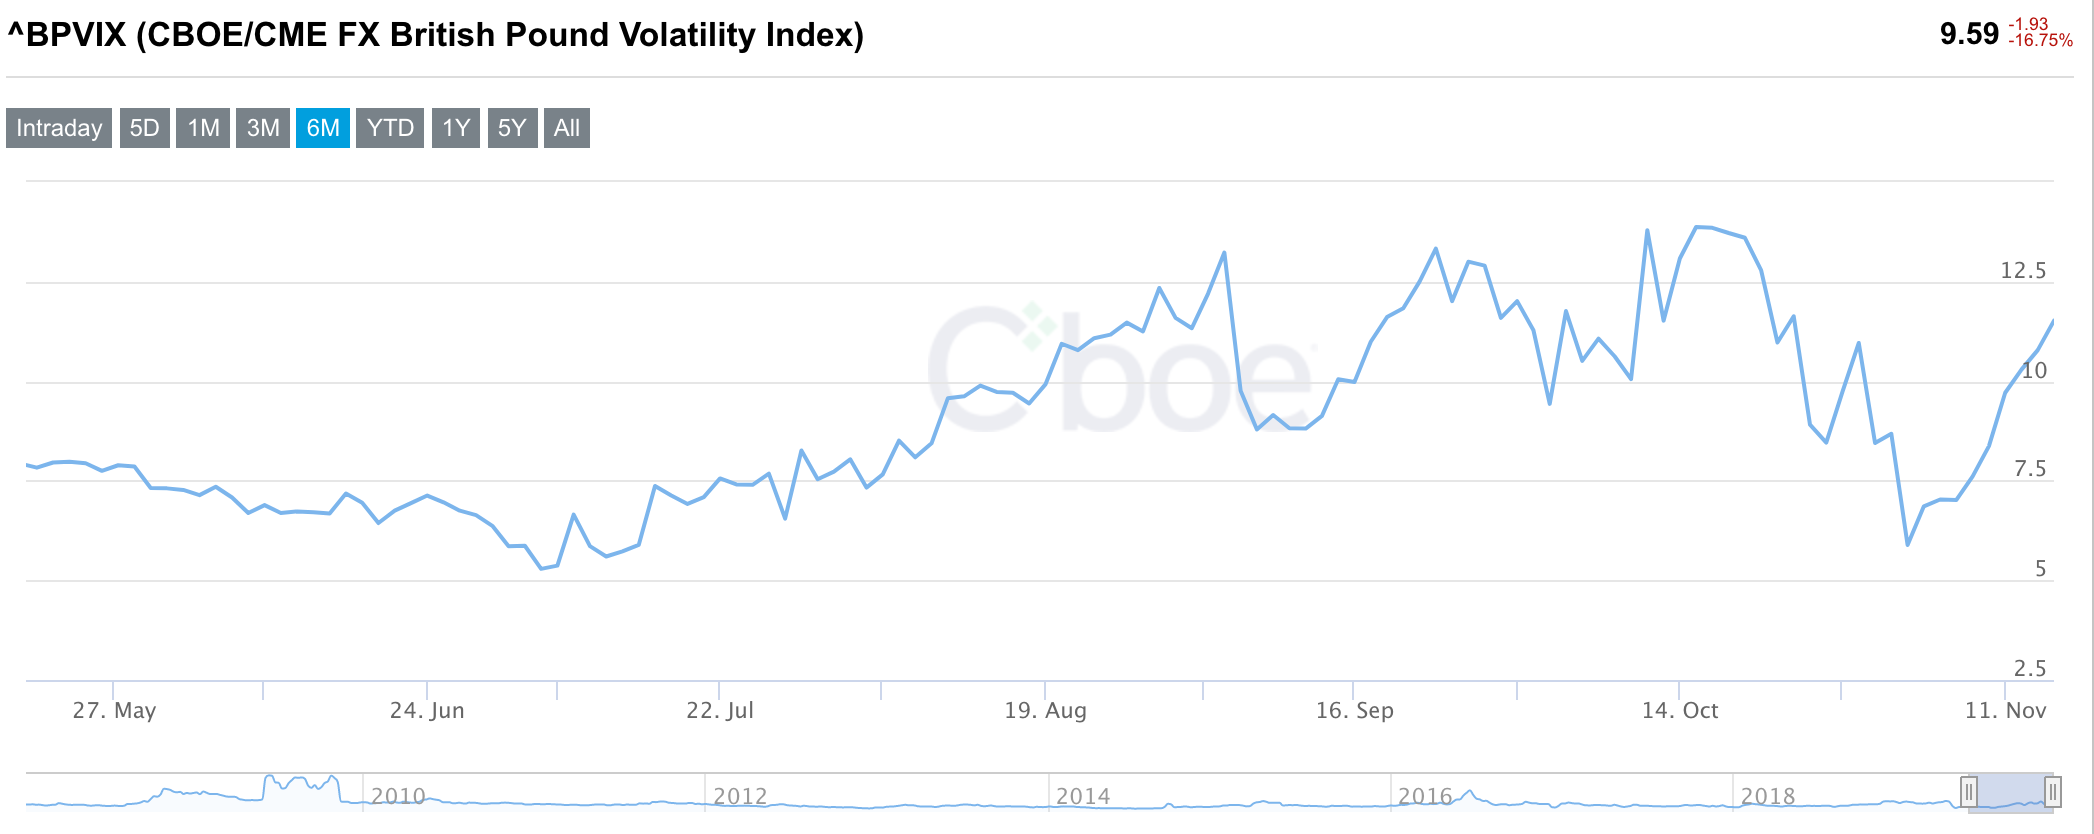 Expectations of sterling volatility have been rising since the start of the mount. Photo: Cboe/Screenshot